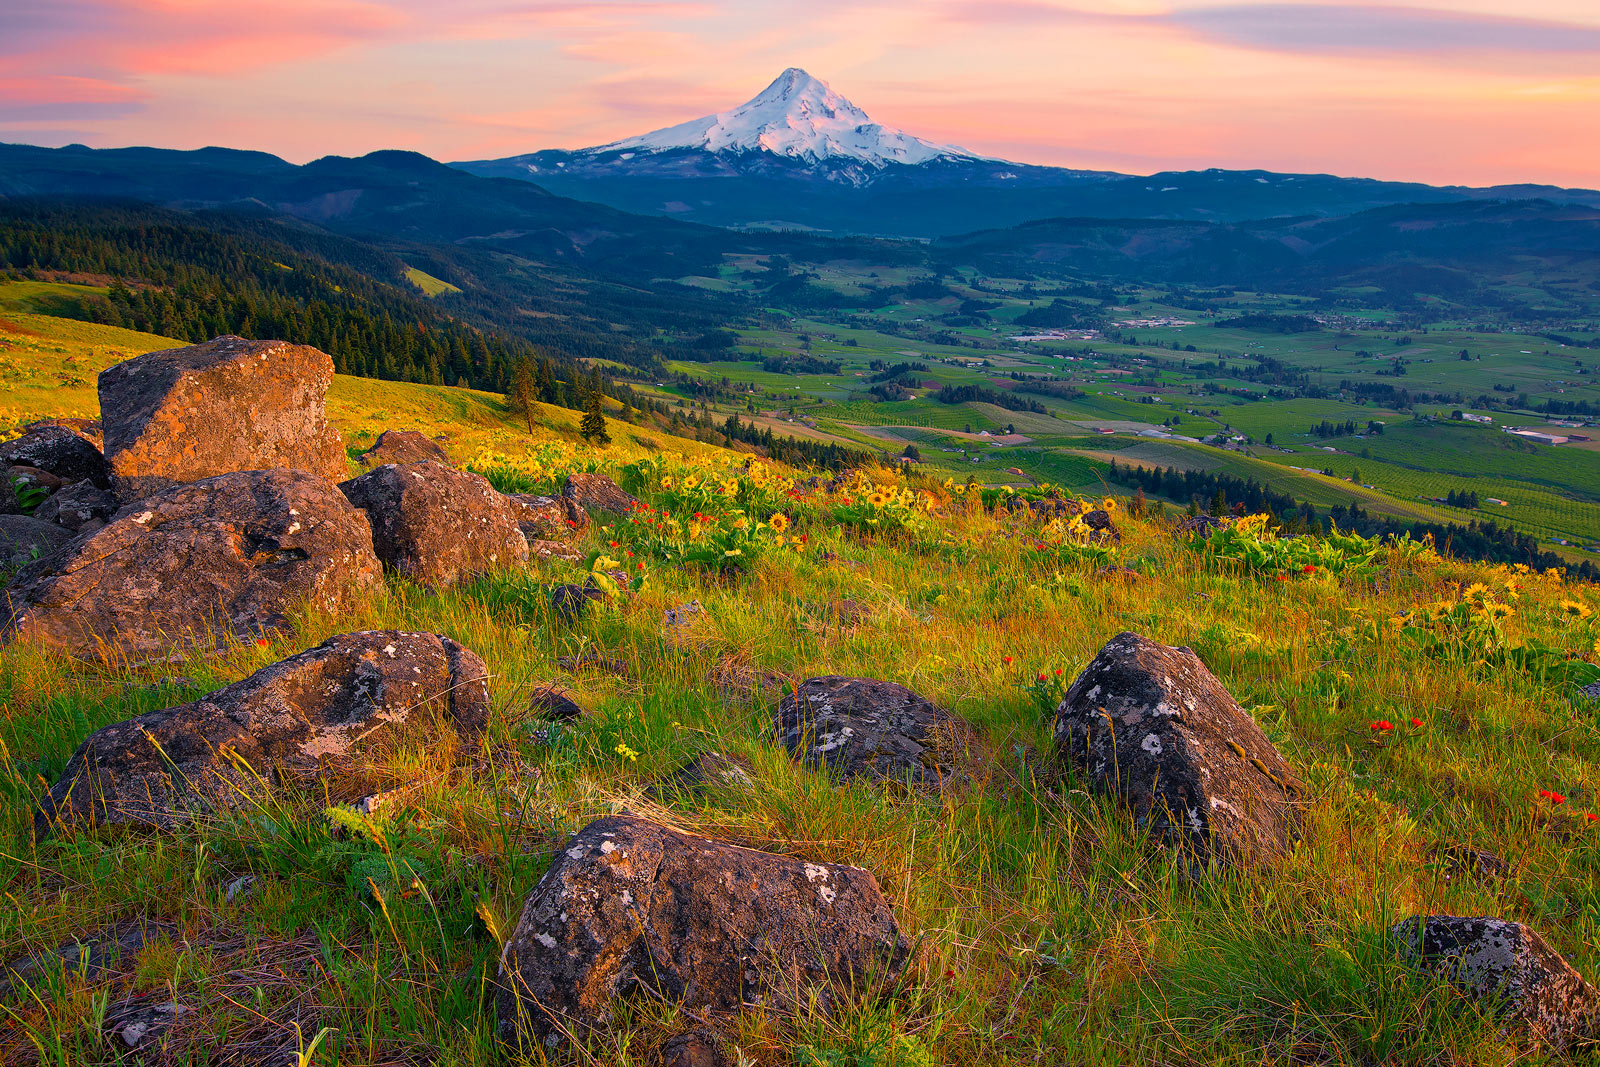 Mount Hood, Oregon, Columbia River Gorge, Hood River, National Scenic Area, Volcanic Rock, Mountain, Landscape, Pacific Northwest, photo